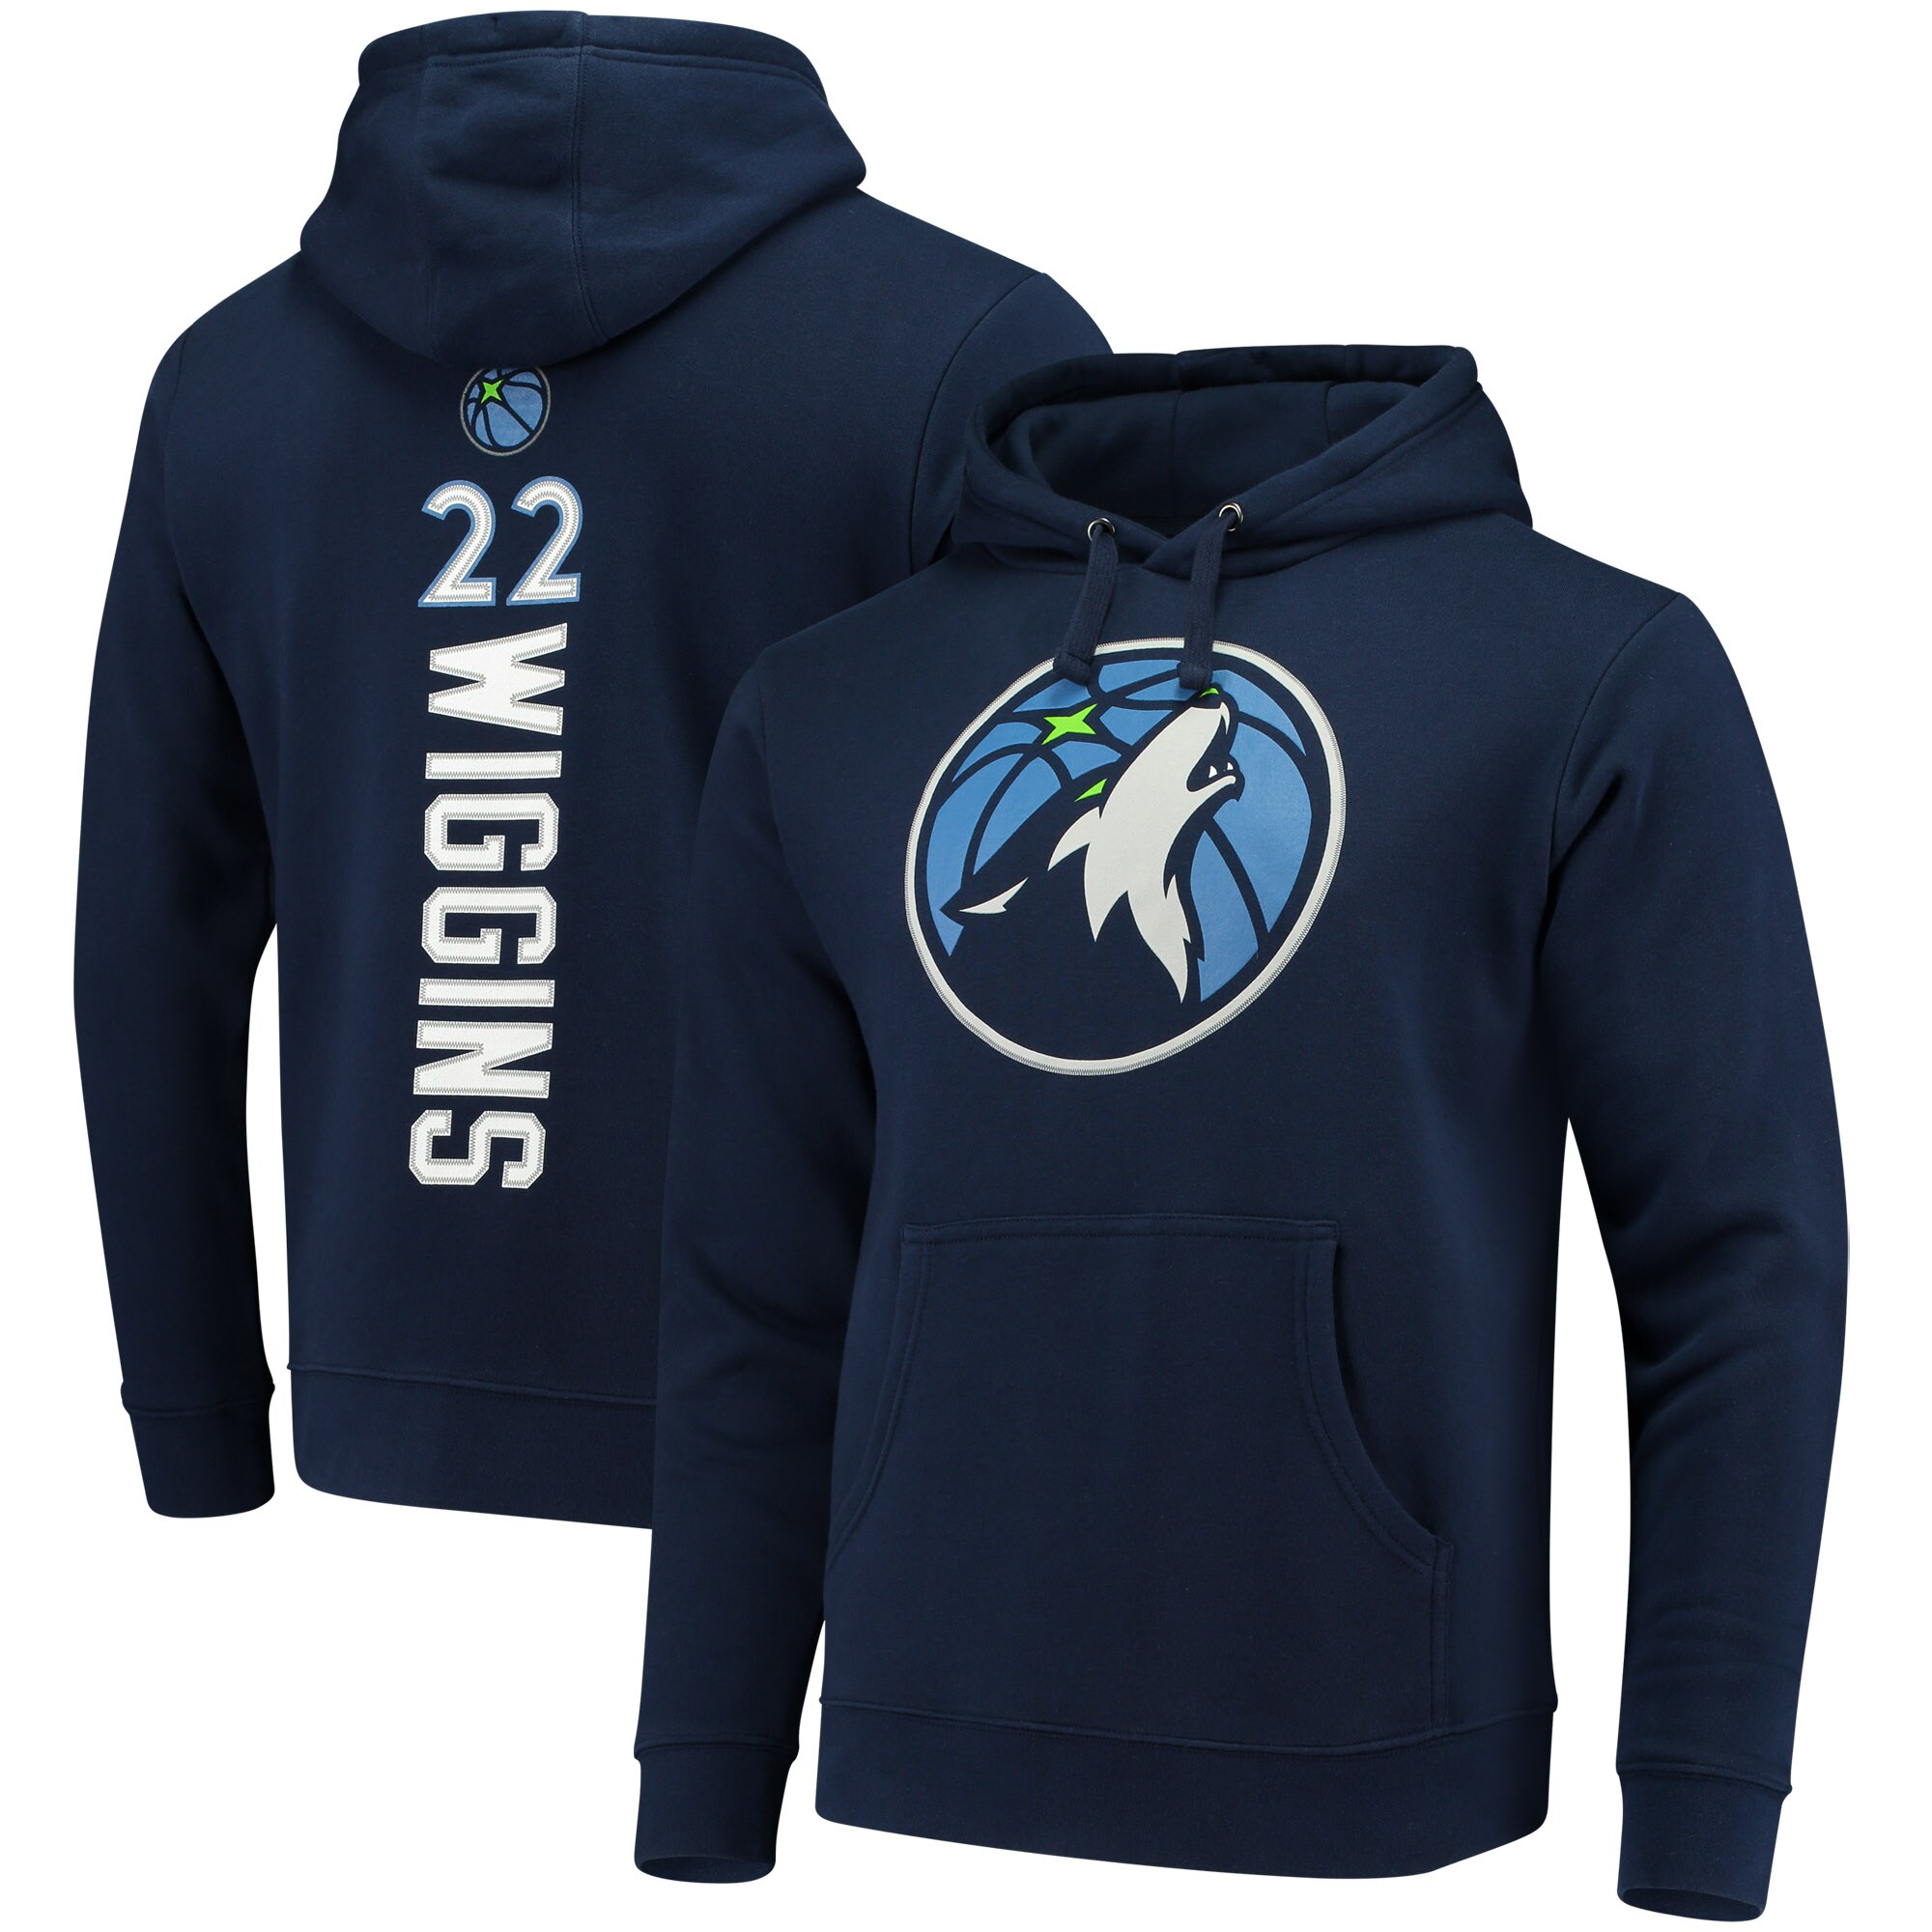 Andrew Wiggins Minnesota Timberwolves Fanatics Branded Backer Name & Number Pullover Hoodie - Navy